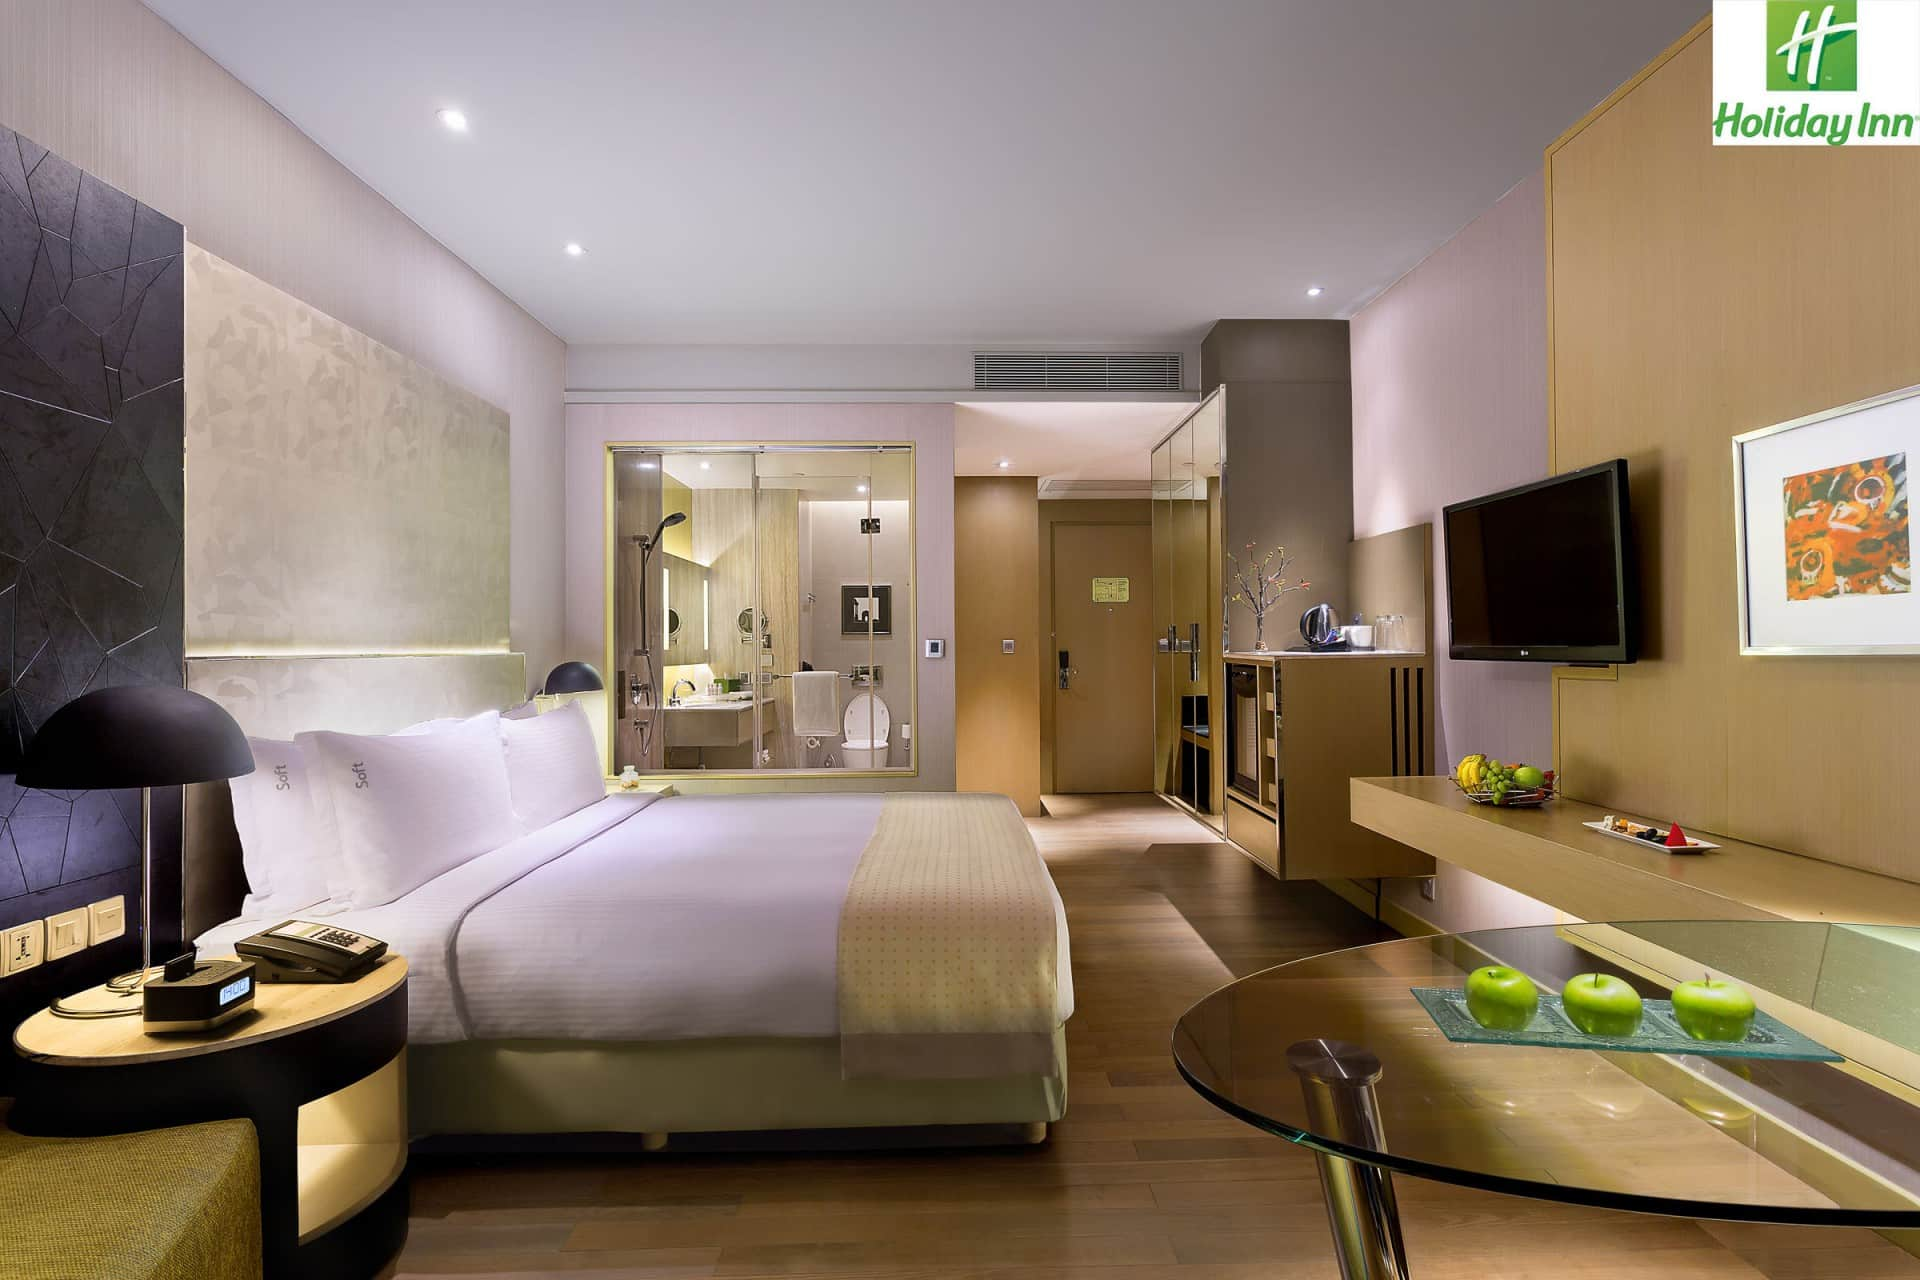 Best Architecture Photographer Jaipur India   Holiday Inn Double Bedroom Photography India